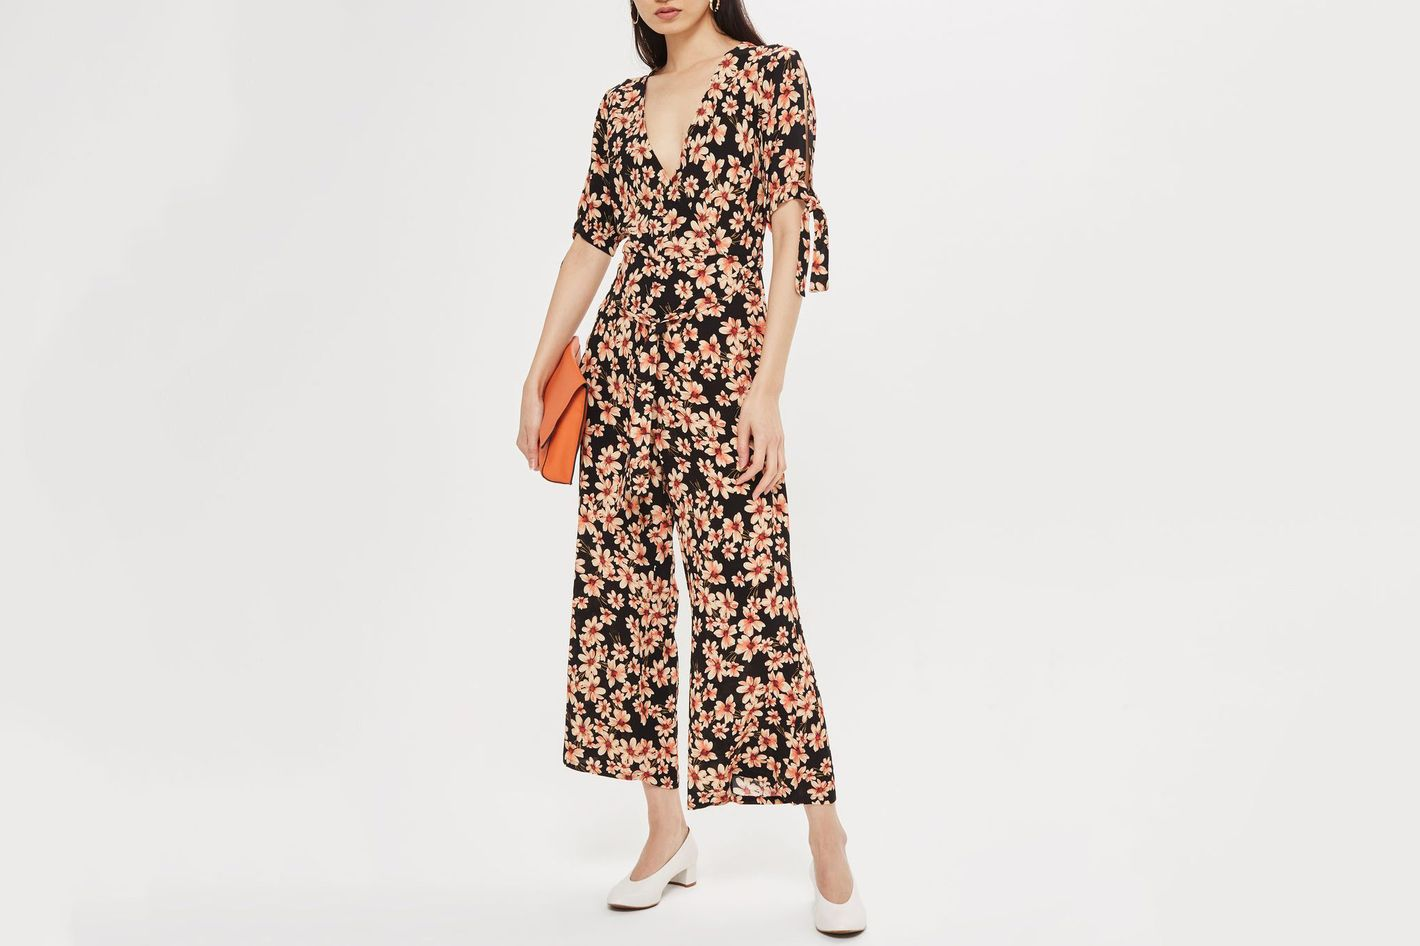 15 Dressy Jumpsuits To Wear To A Wedding 2018